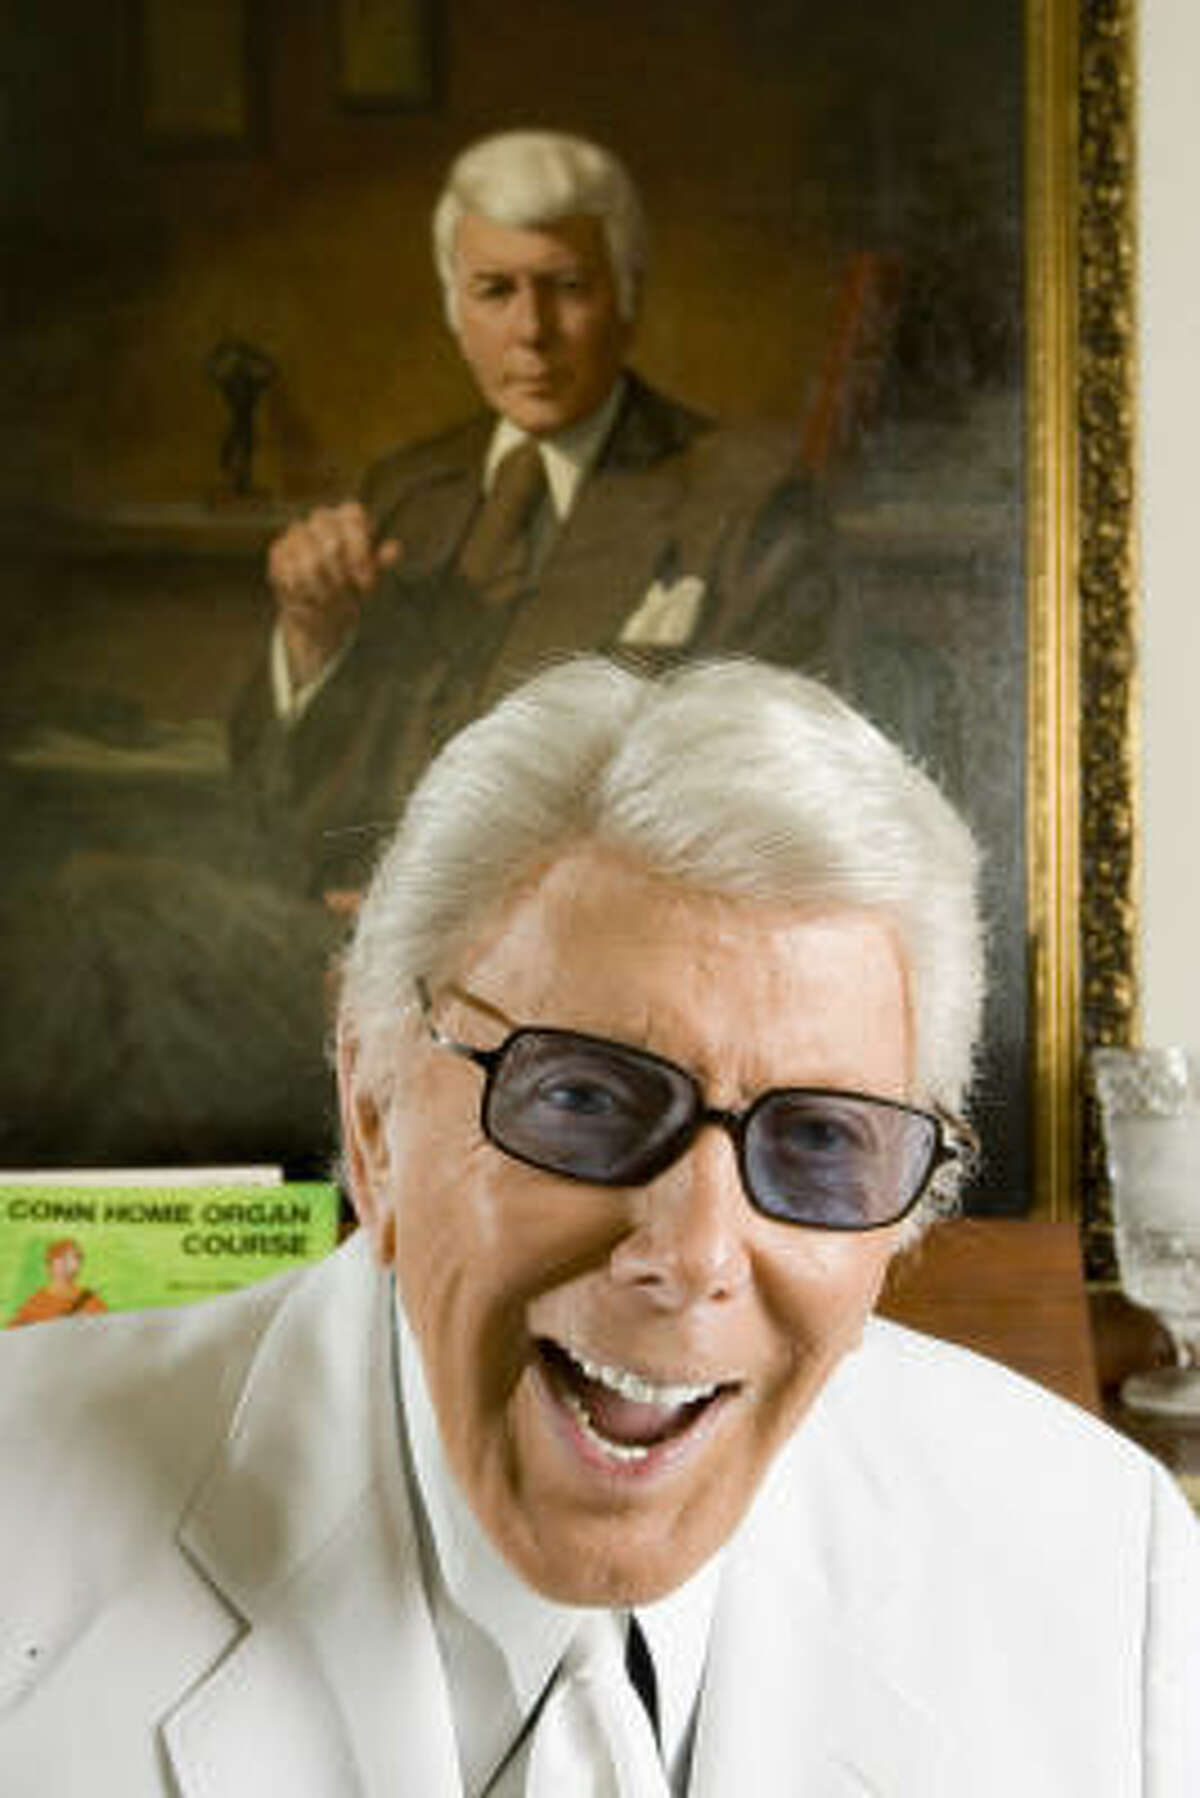 Channel 13 reporter Marvin Zindler poses for a portrait on May 11, 2006, at his home in Houston.